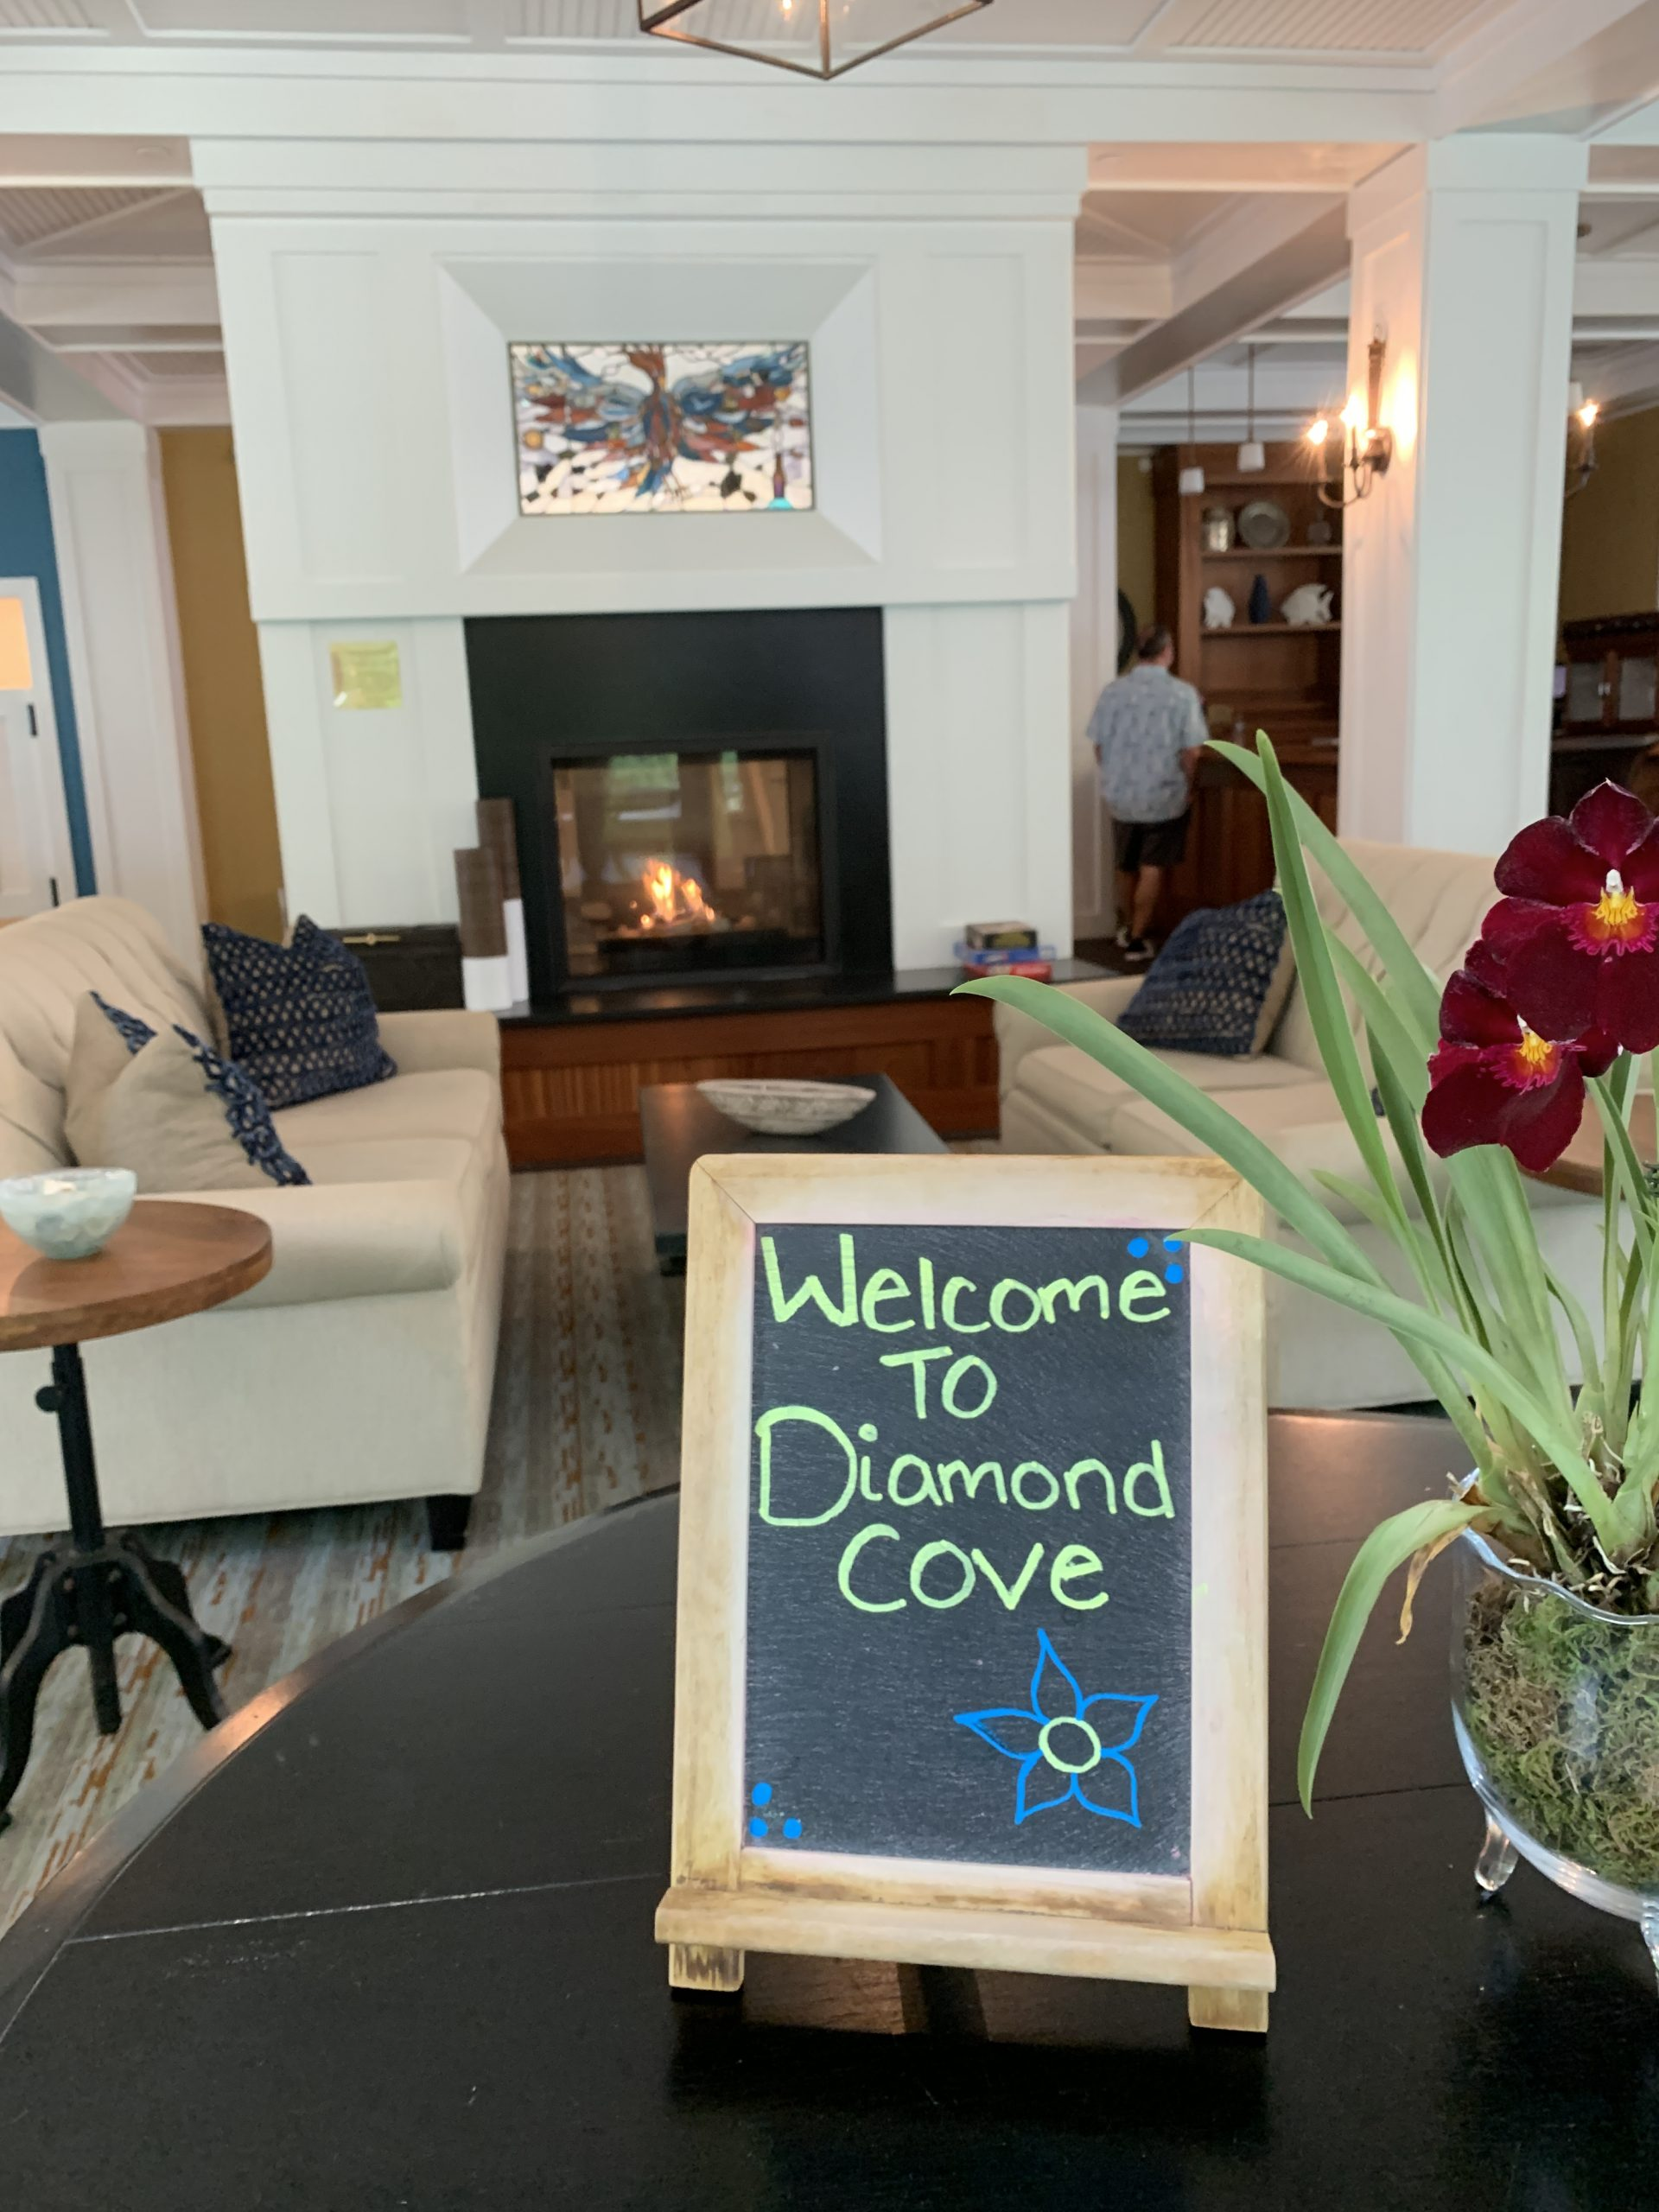 The Inn at Diamond Cove on Great Diamond Island, Maine, offers a perfect escape.